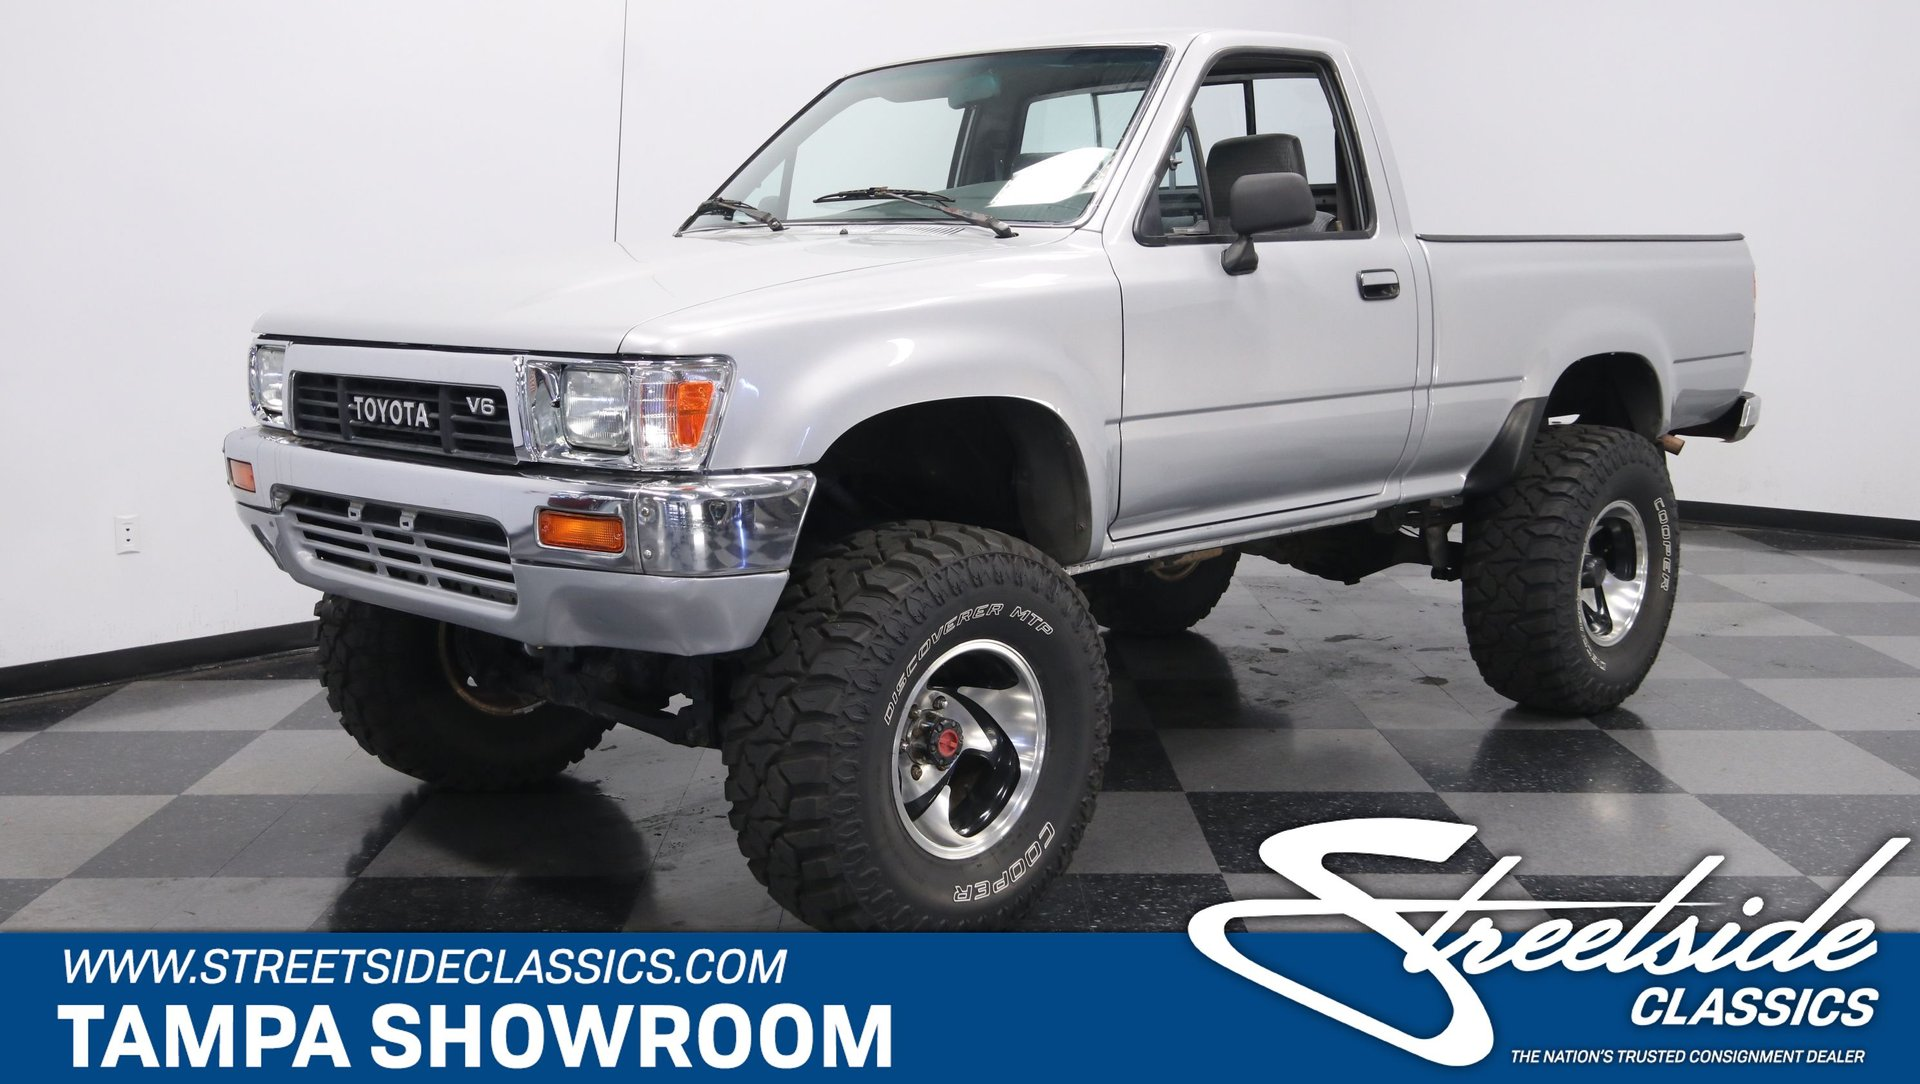 1991 Toyota Pickup Truck Classic Cars For Sale Streetside Classics The Nation S 1 Consignment Dealer